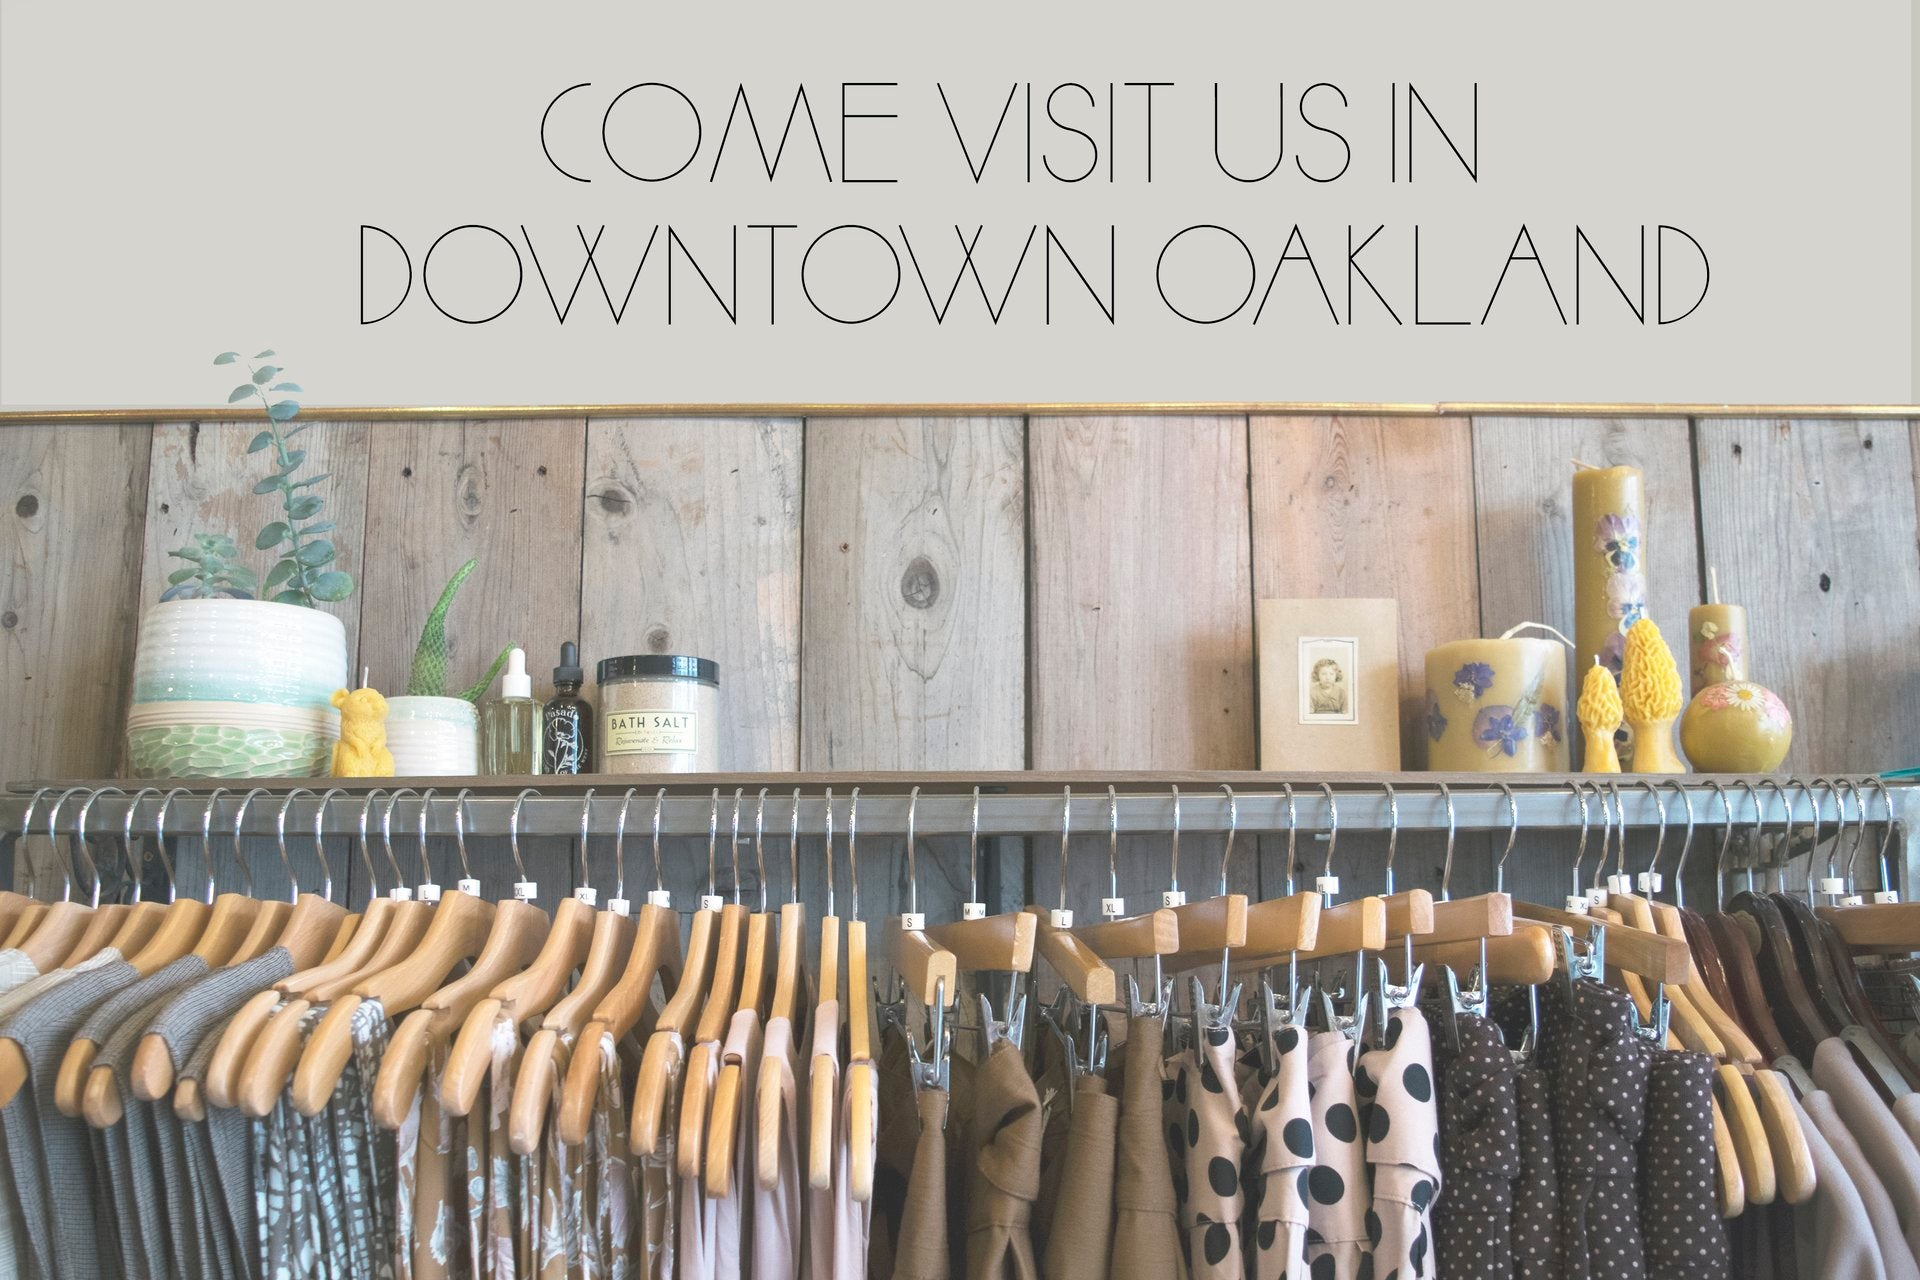 field day, independent clothing, women's fashion, made in oakland, bias dress, pockets, belted, plus size